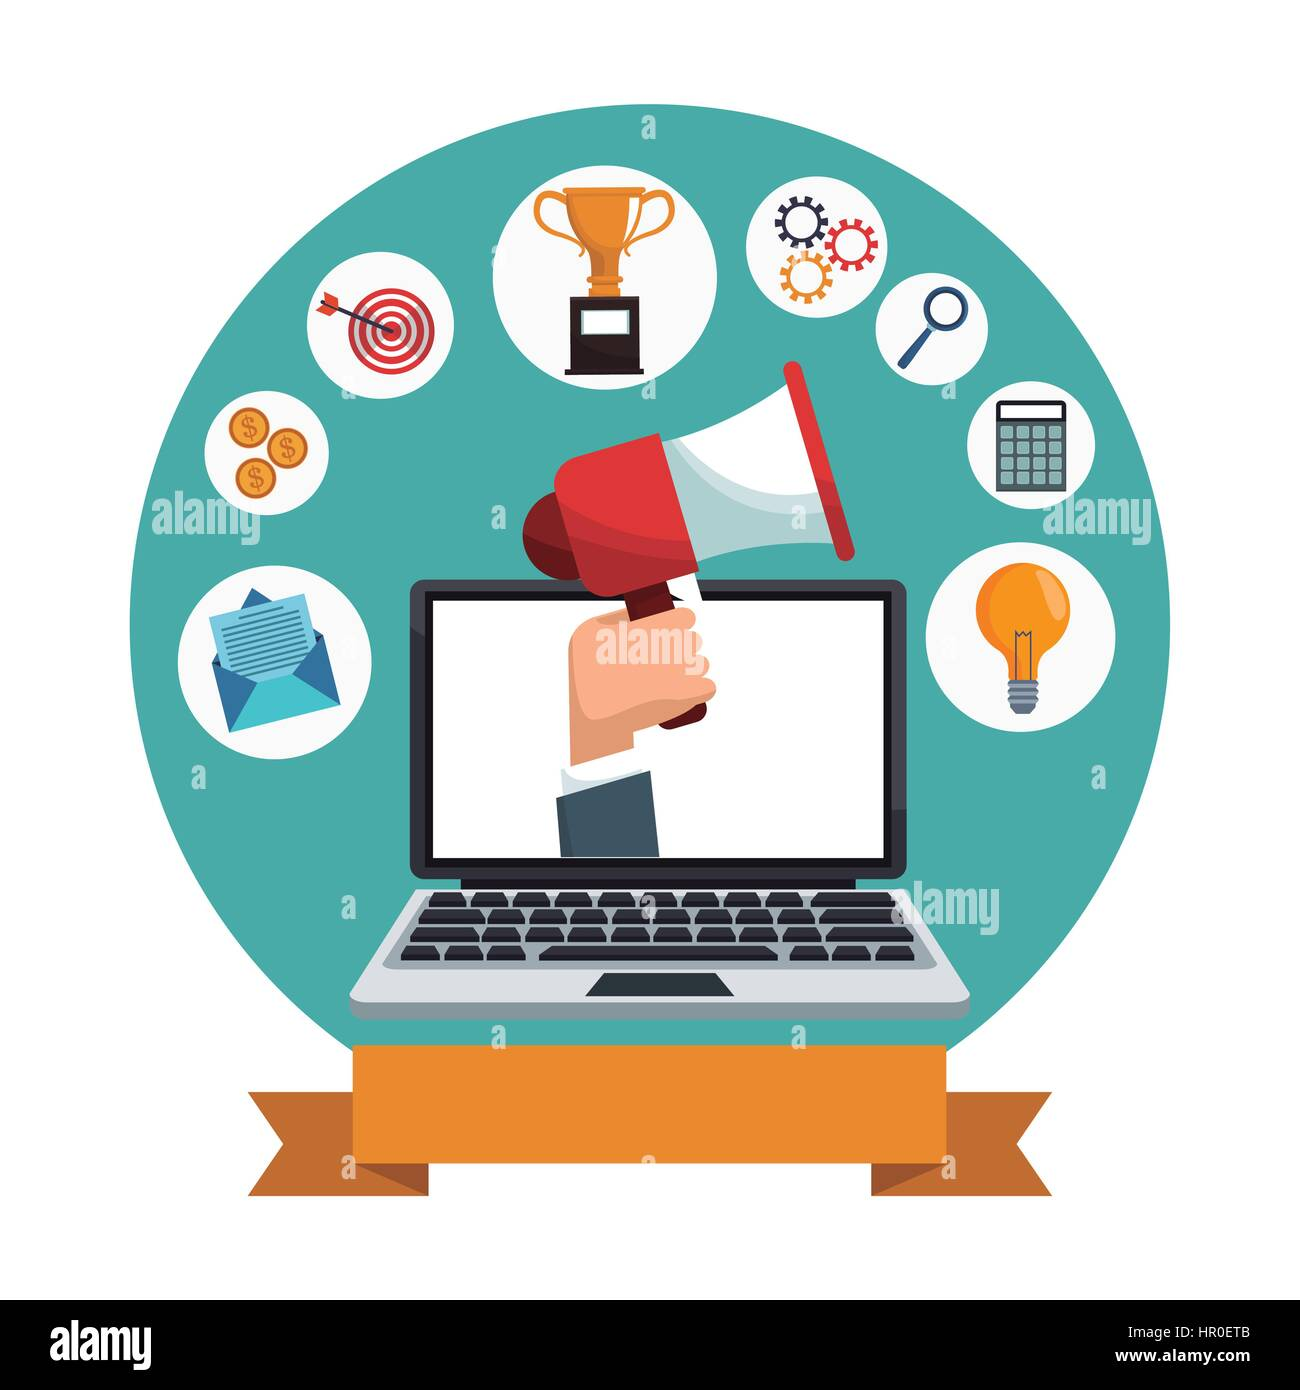 digital marketing laptop social media icons stock vector image art alamy https www alamy com stock photo digital marketing laptop social media icons 134621323 html